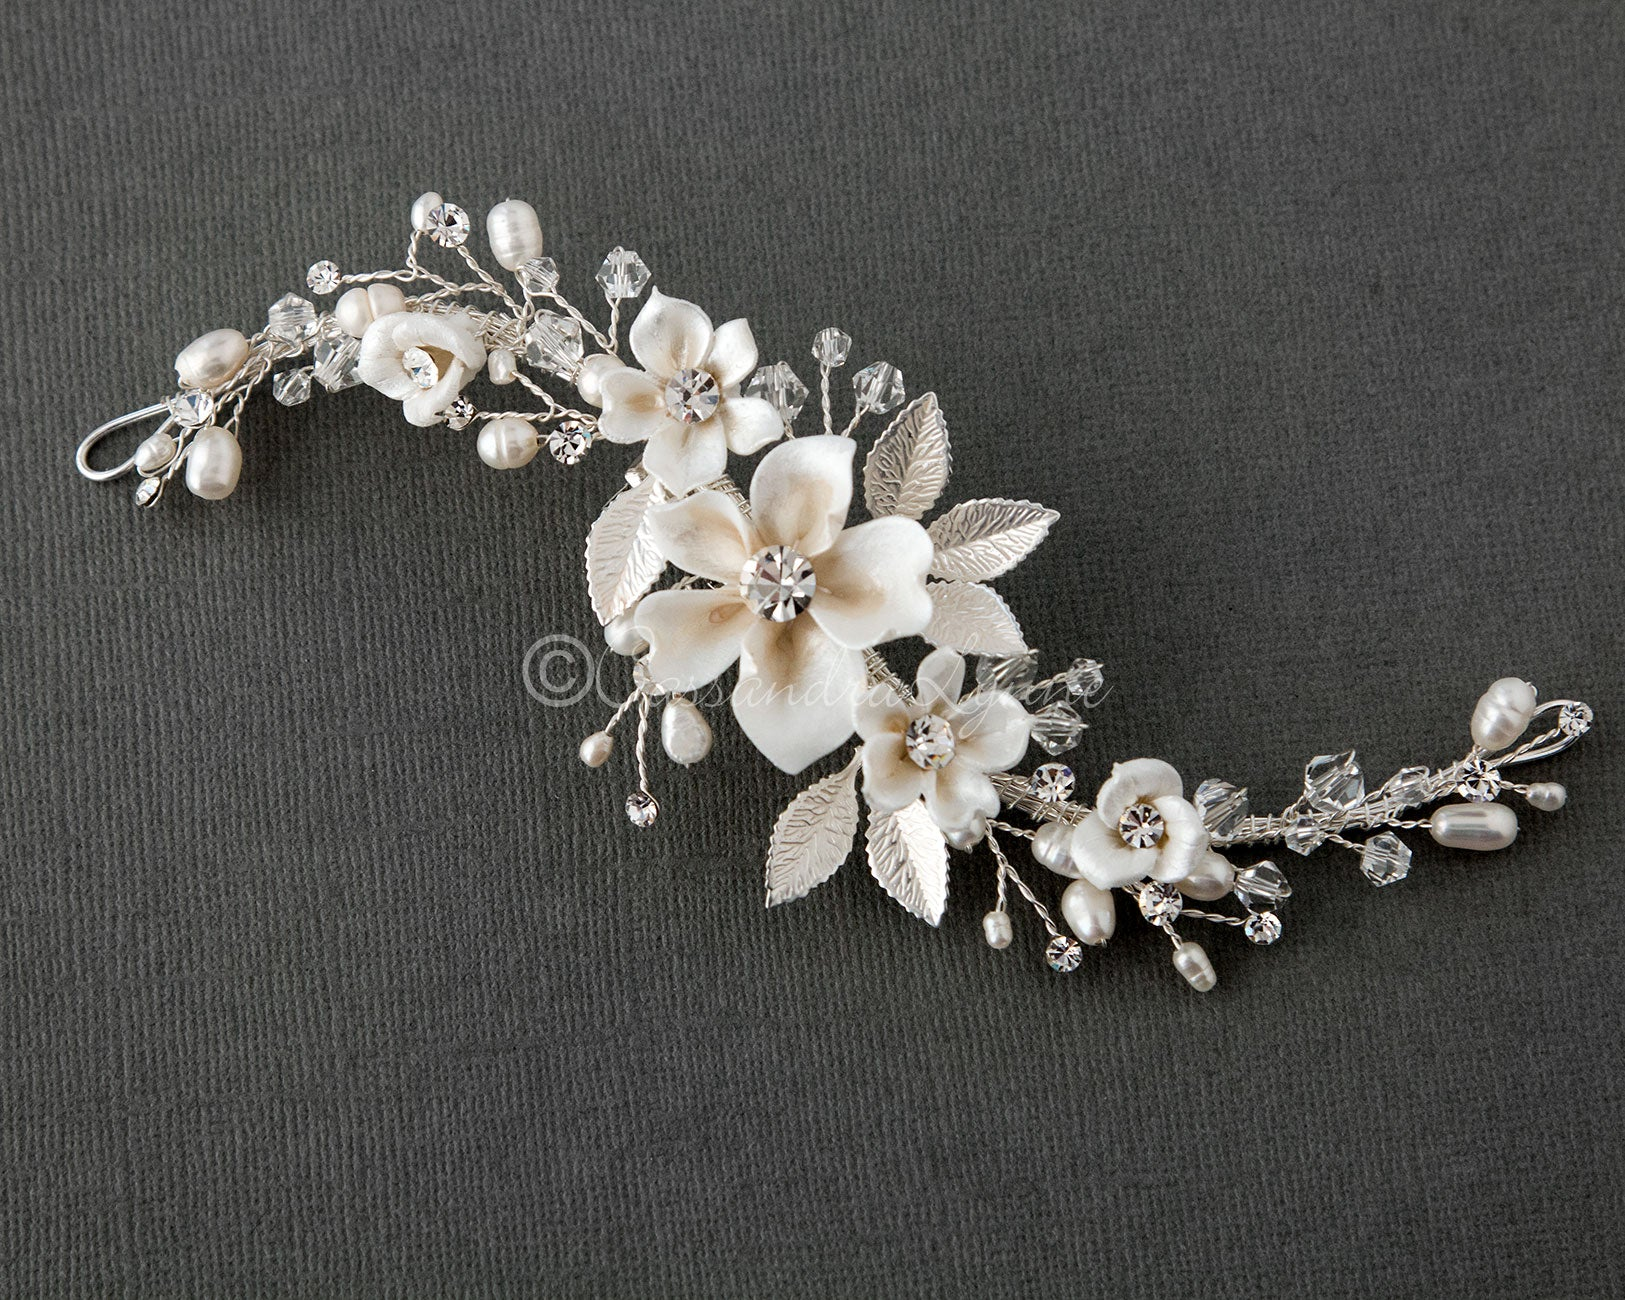 Porcelain Flowers and Pearls Hair Clip